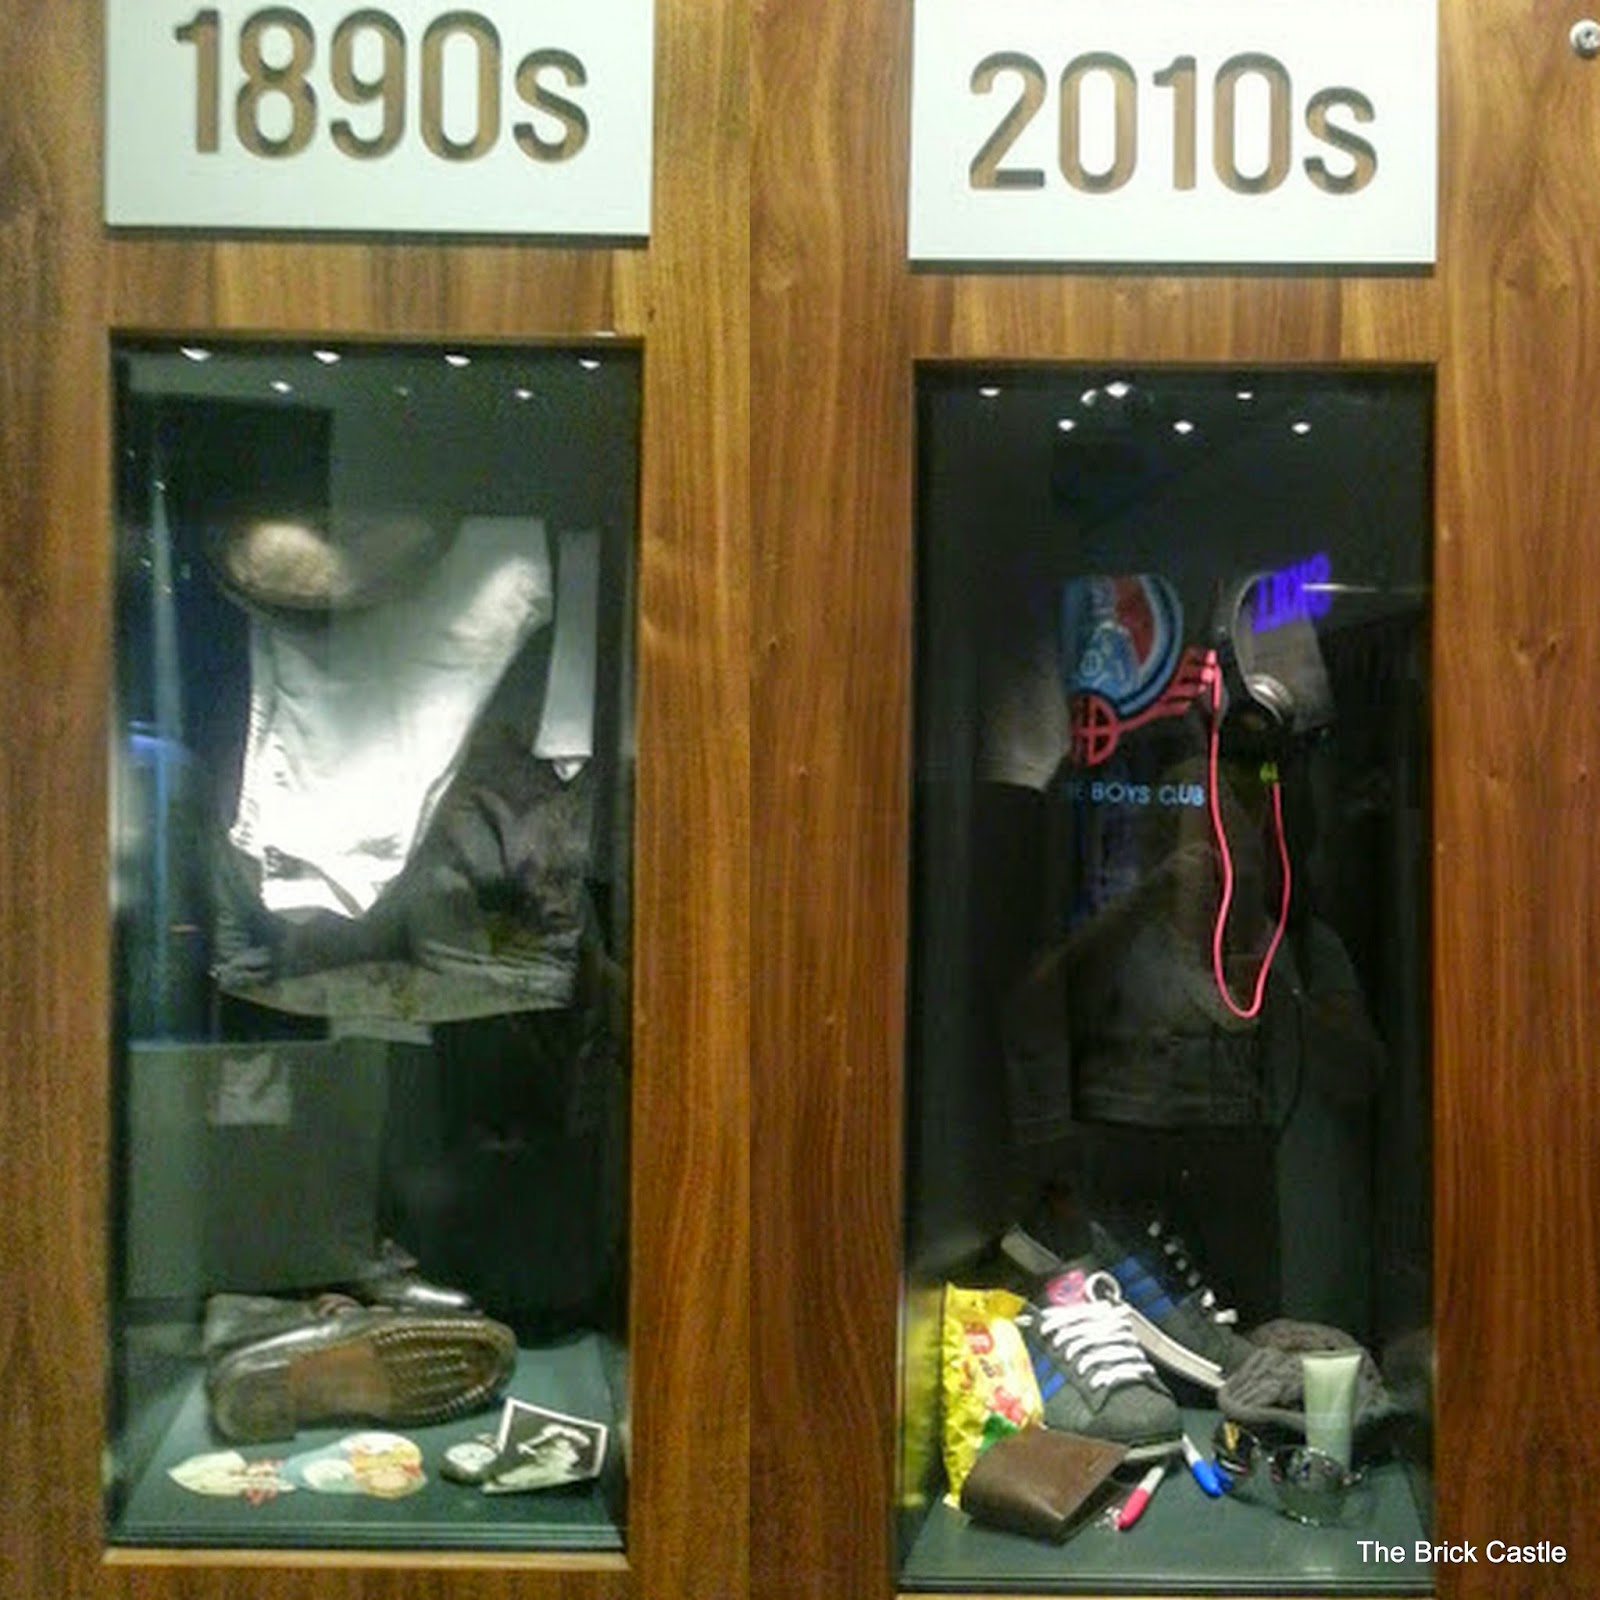 The National Football Museum at Urbis, Manchester Dressing Room Lockers from 1890's and 2010's